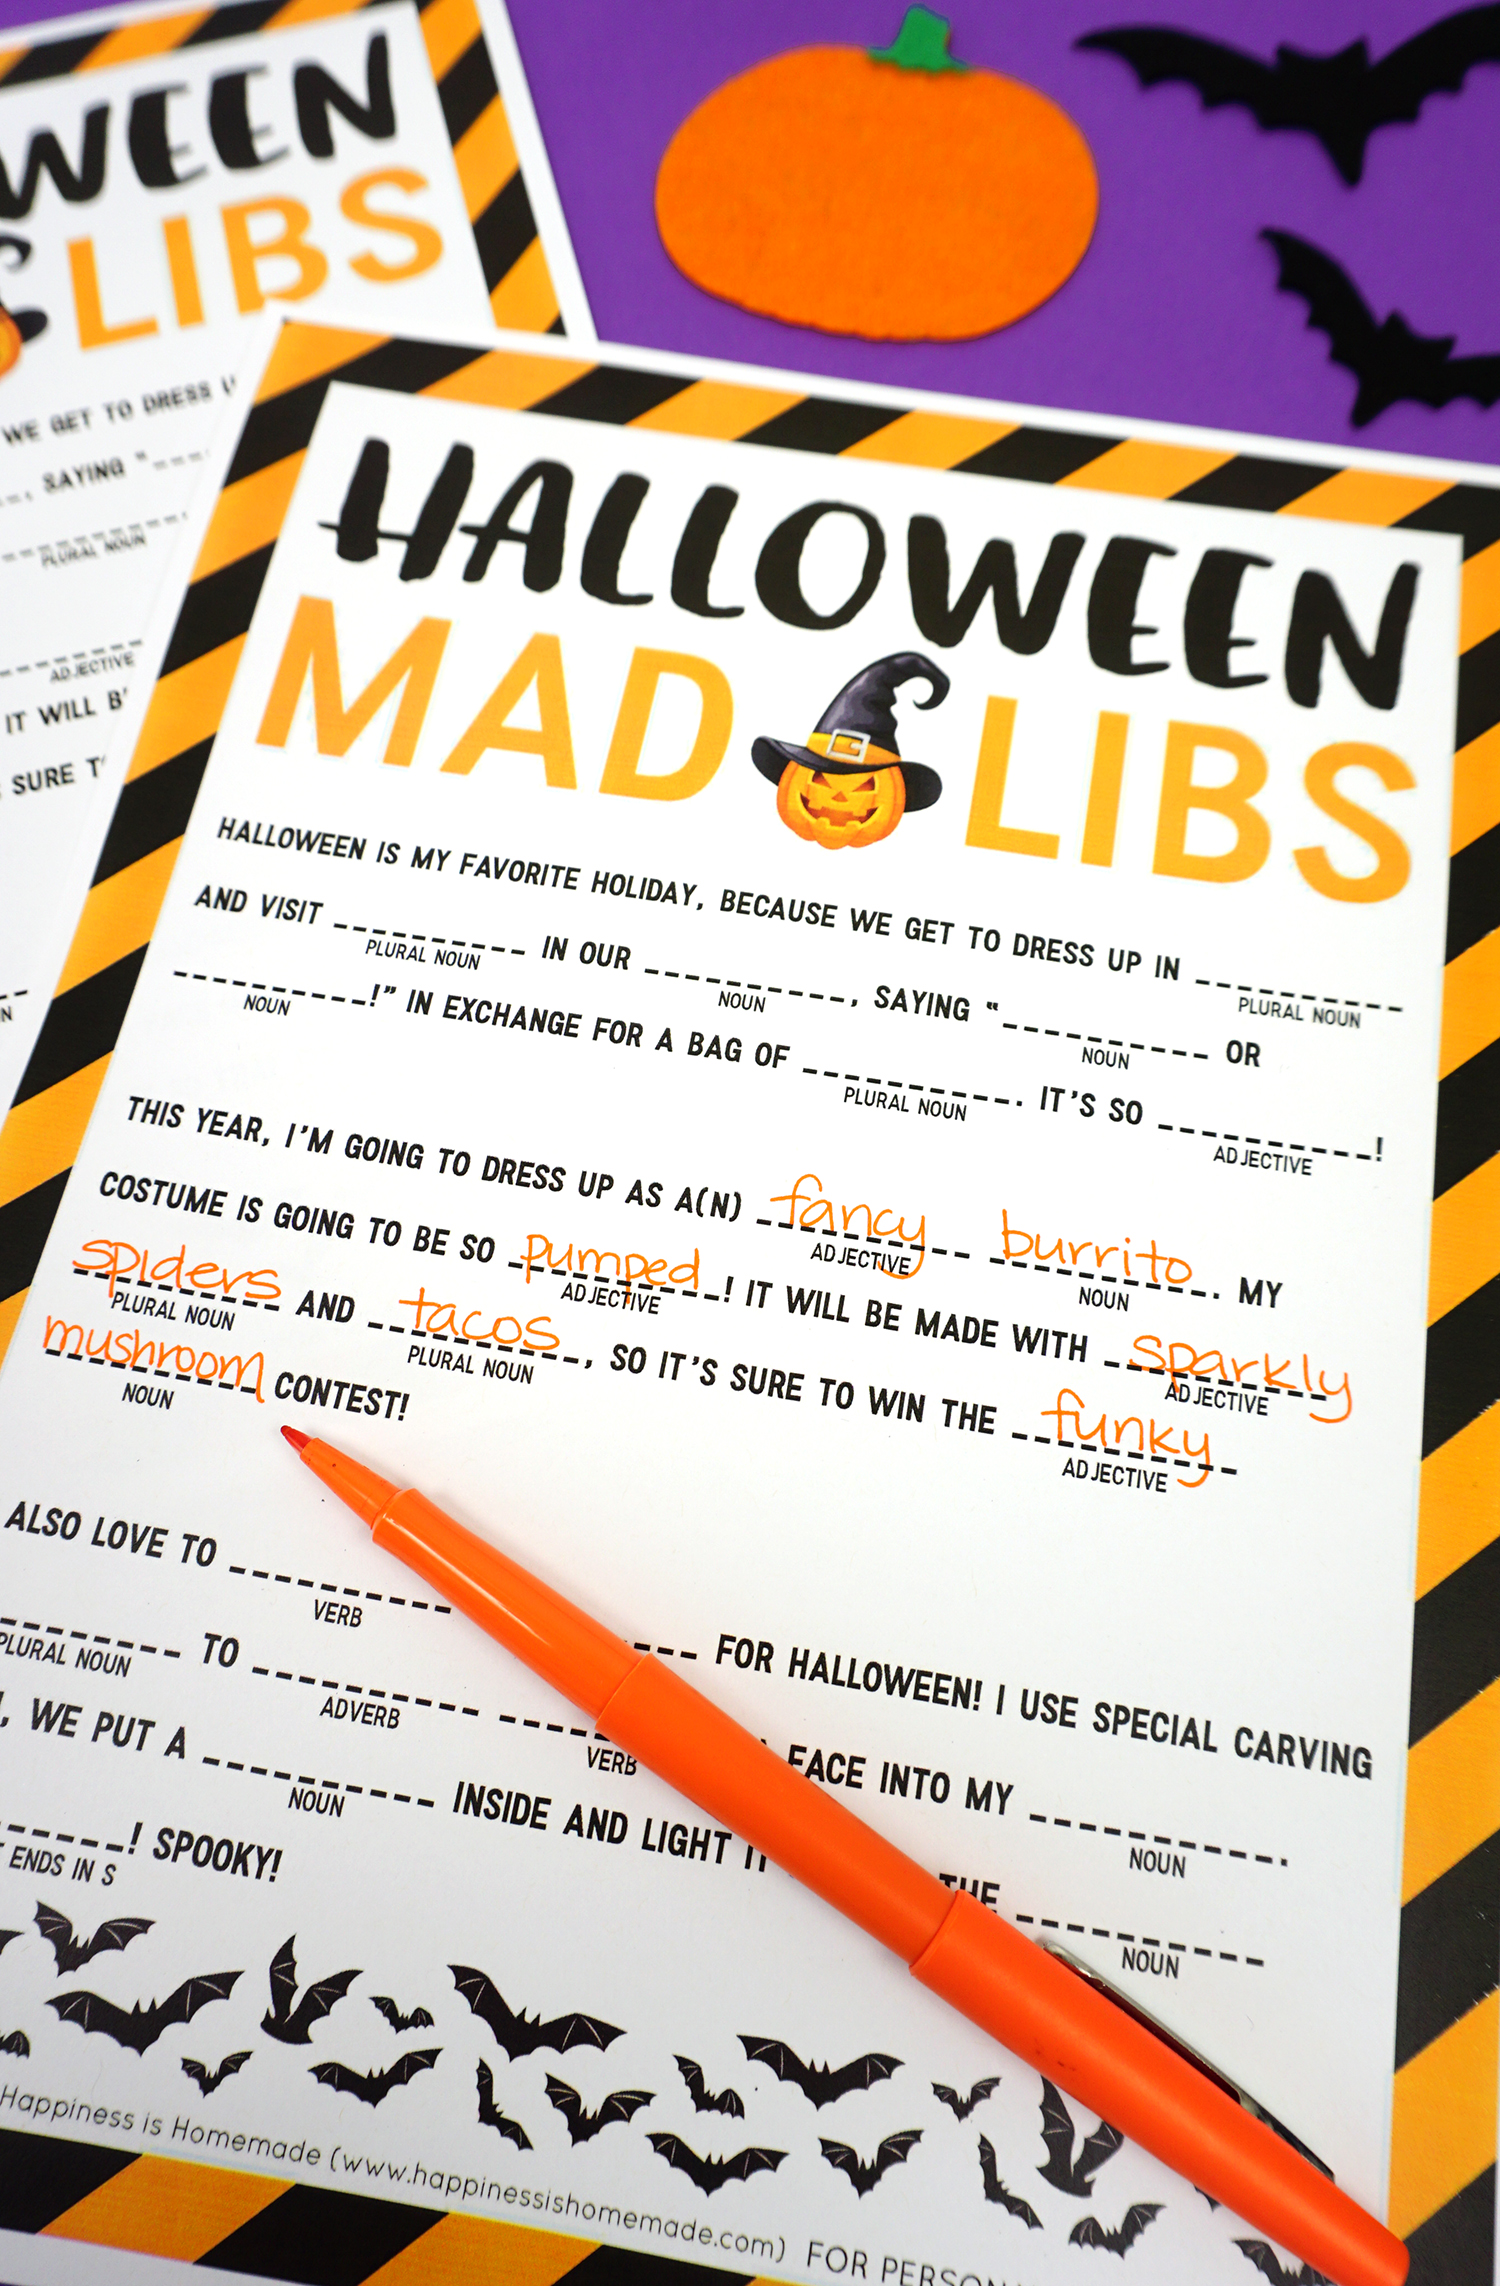 image about Halloween Mad Libs Printable Free named Halloween Outrageous Libs Printable - Contentment is Do-it-yourself